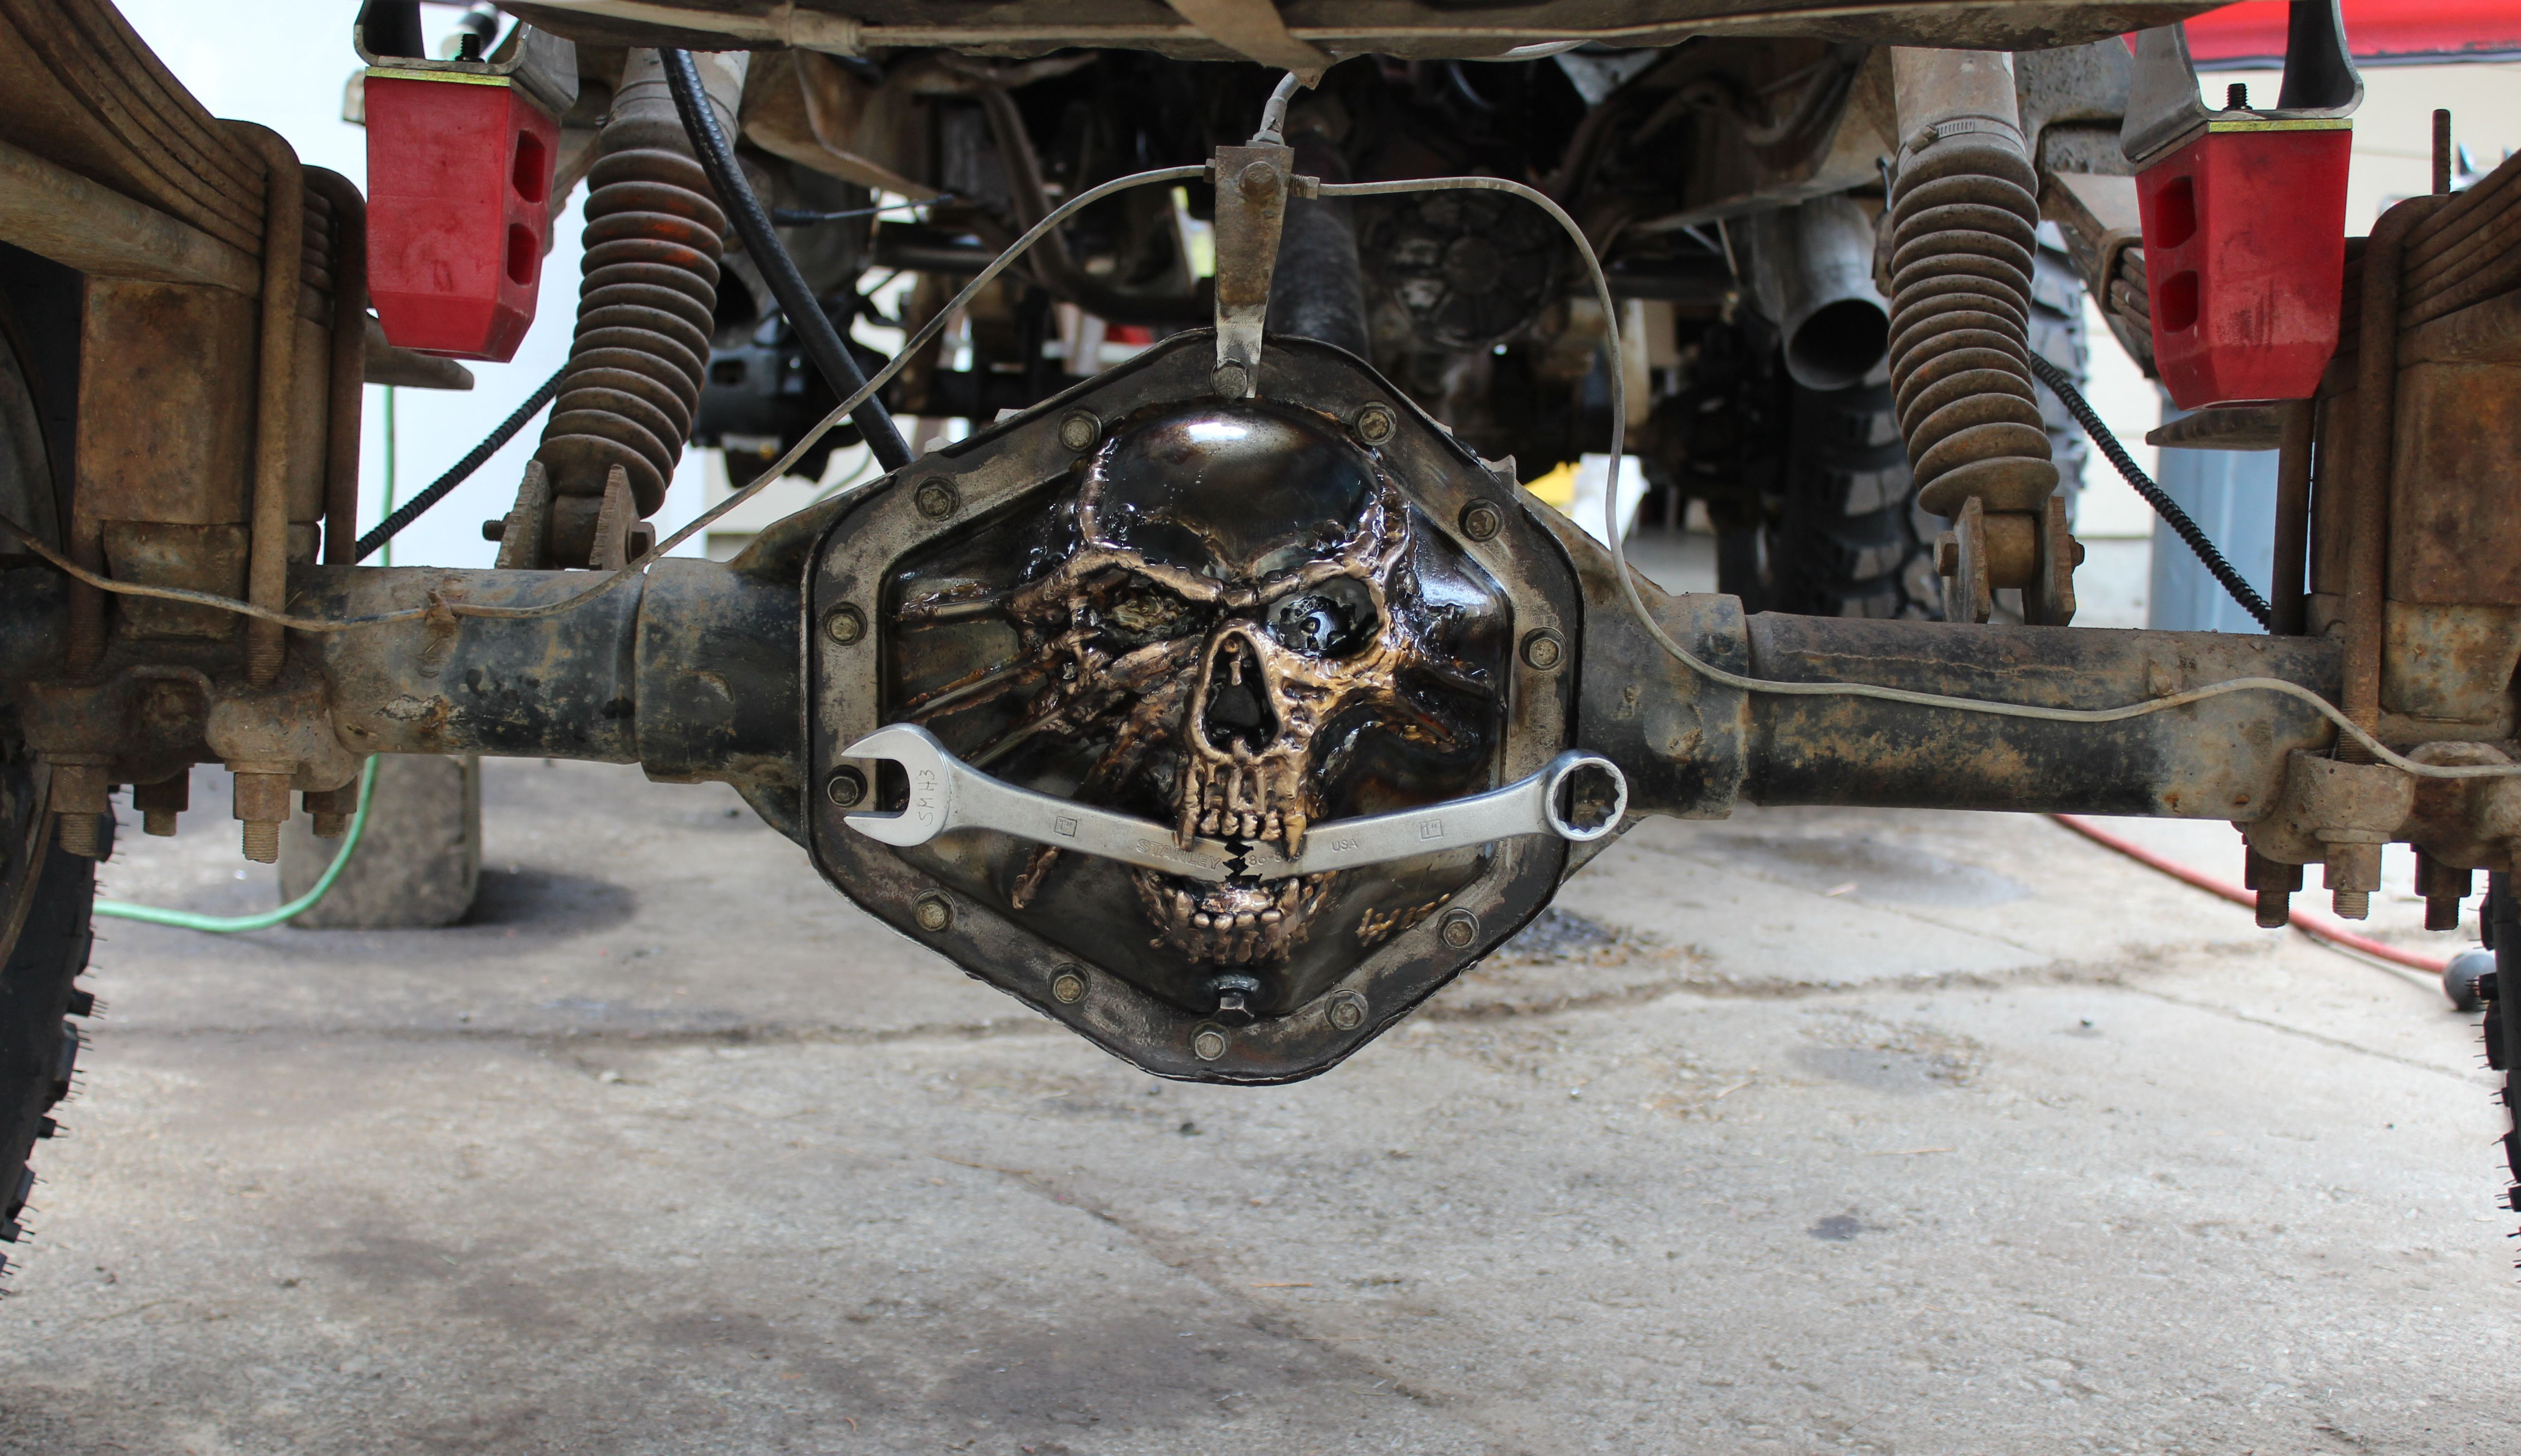 Gm 14 bolt 1 ton dana 60 differential cover rear axle skull steel with a wrench in his mouth on my 54 chevy rat rod truck